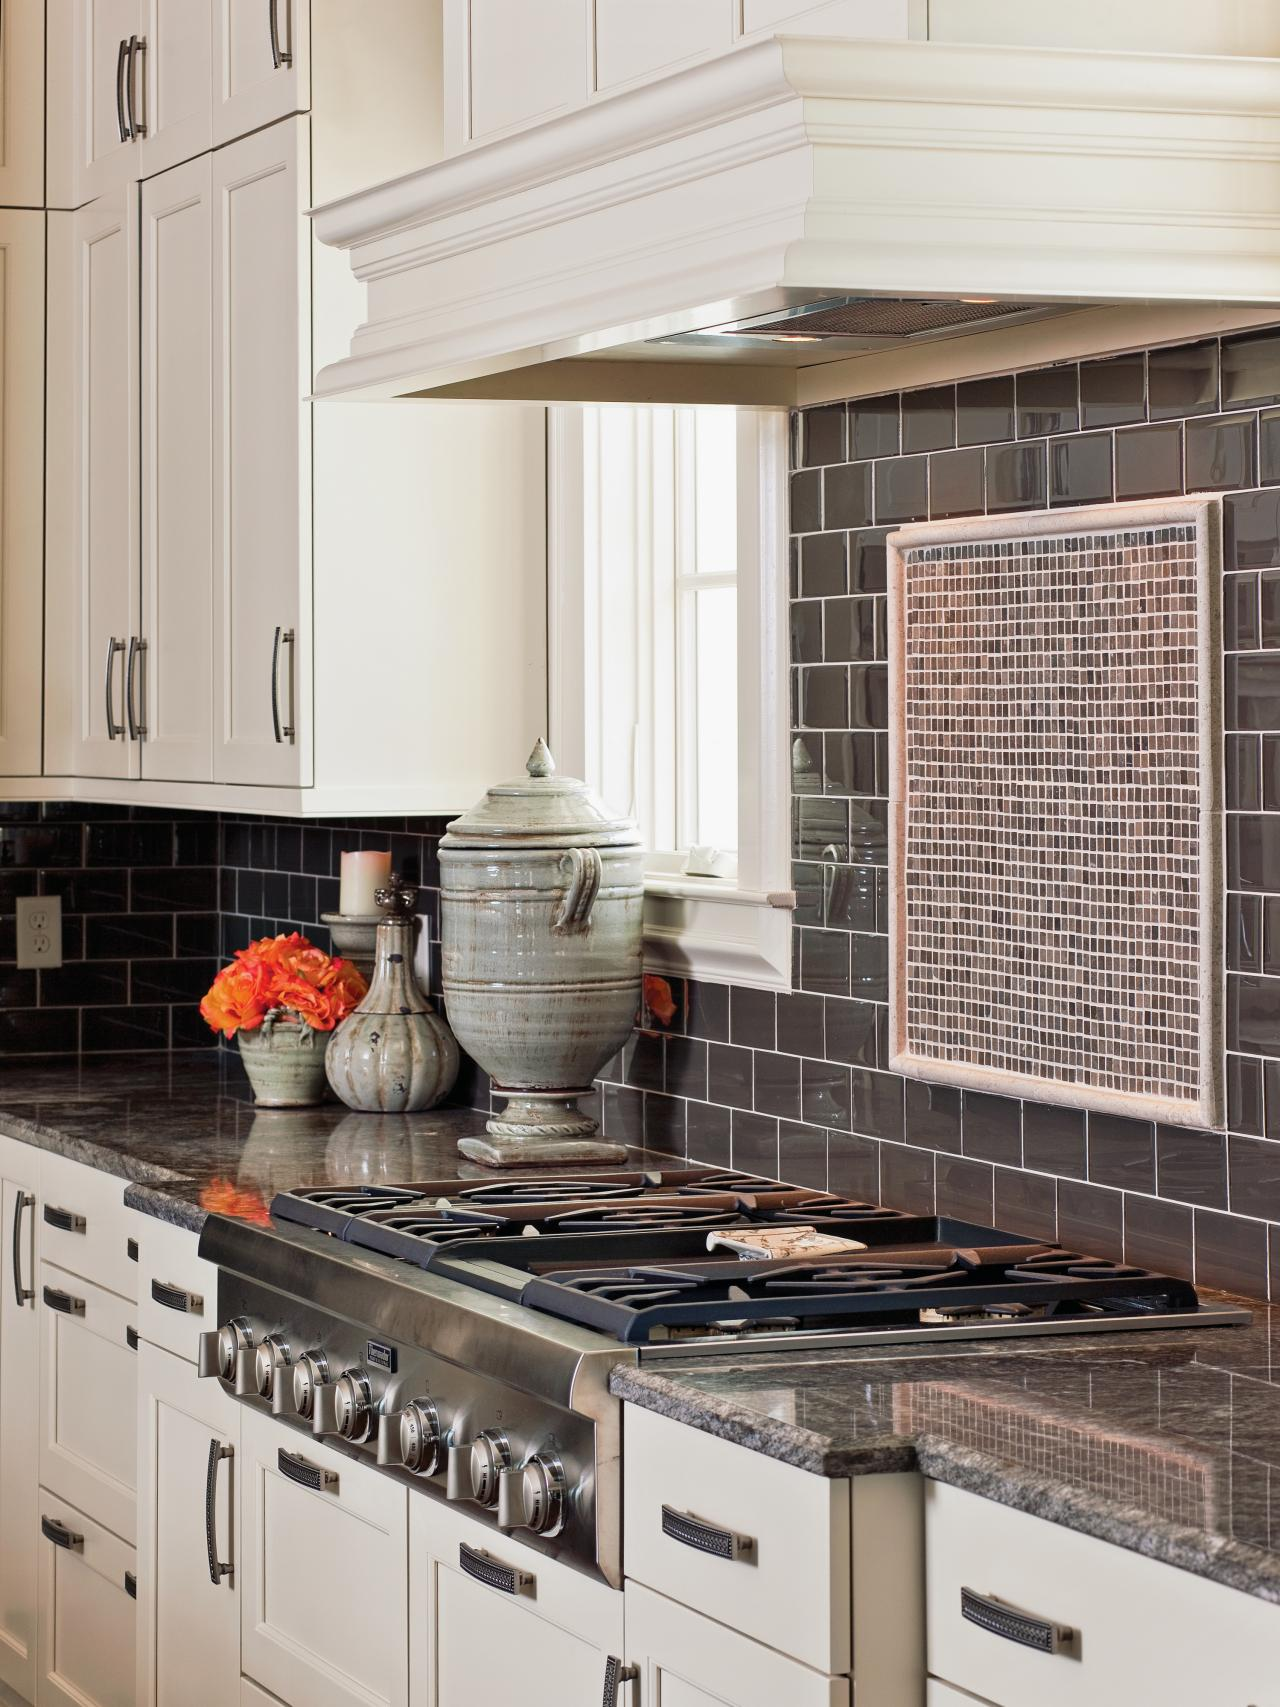 glass tile backsplash ideas pictures tips from hgtv hgtv glass tile backsplash ideas